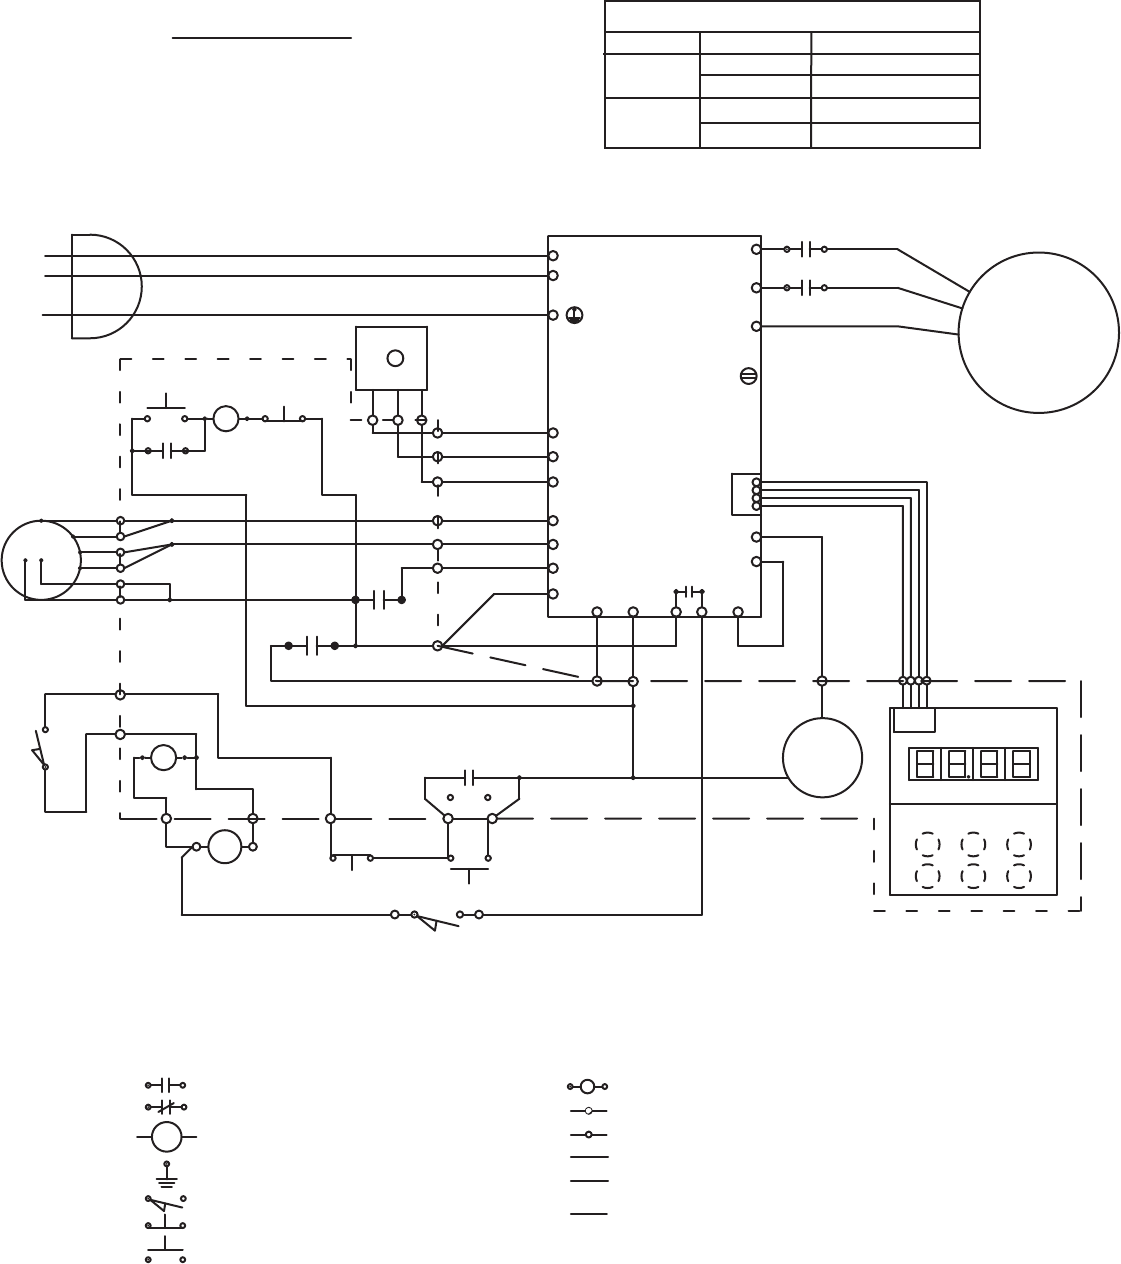 4cb5237c 5ab8 4928 9137 a28183484350 bg33 page 51 of hobart mixer hl200 user guide manualsonline com hobart wiring diagram at bakdesigns.co